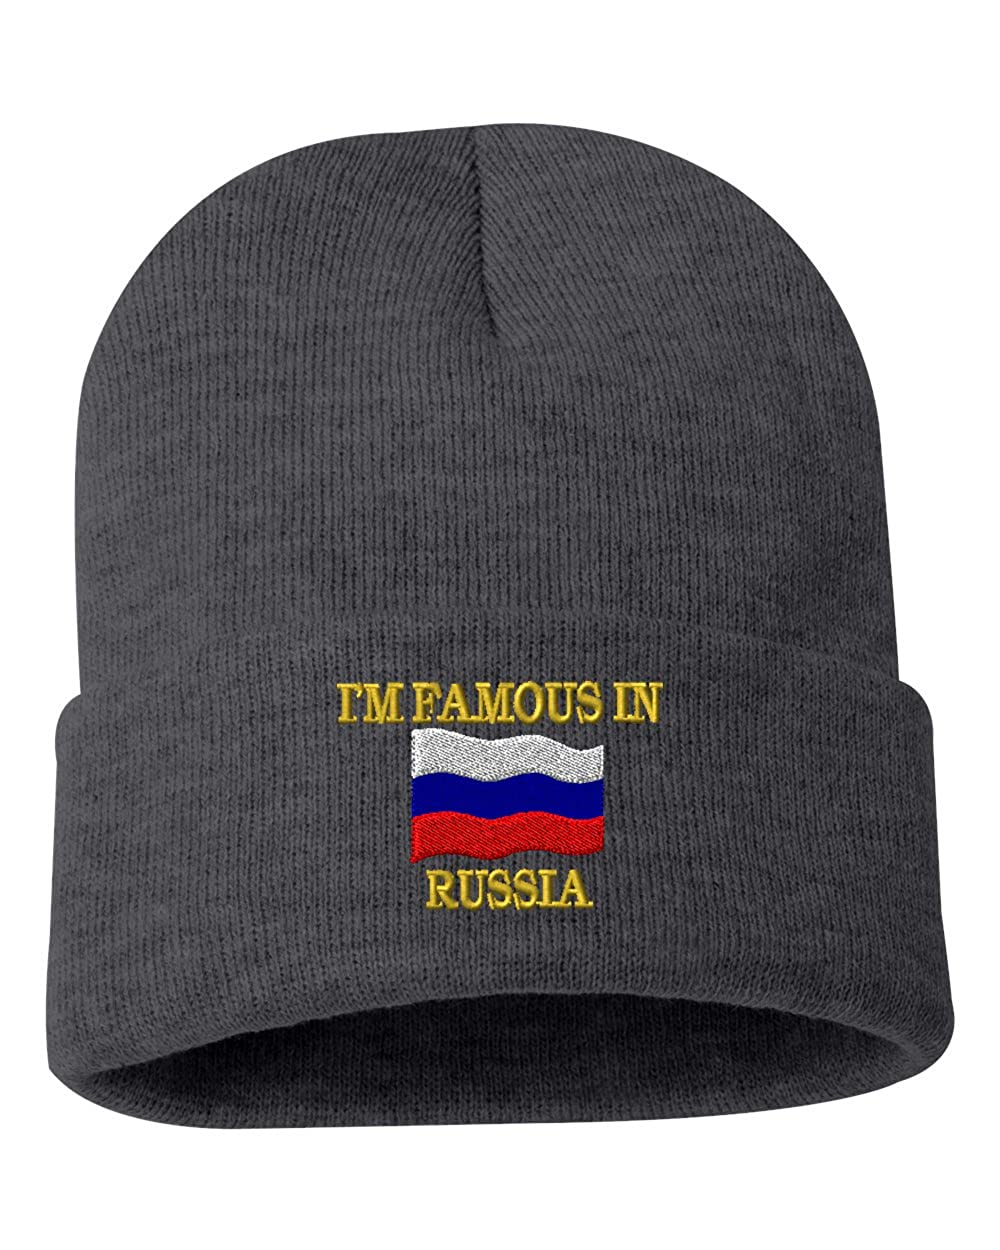 IM FAMOUS IN RUSSIA Custom Personalized Embroidery Embroidered Beanie